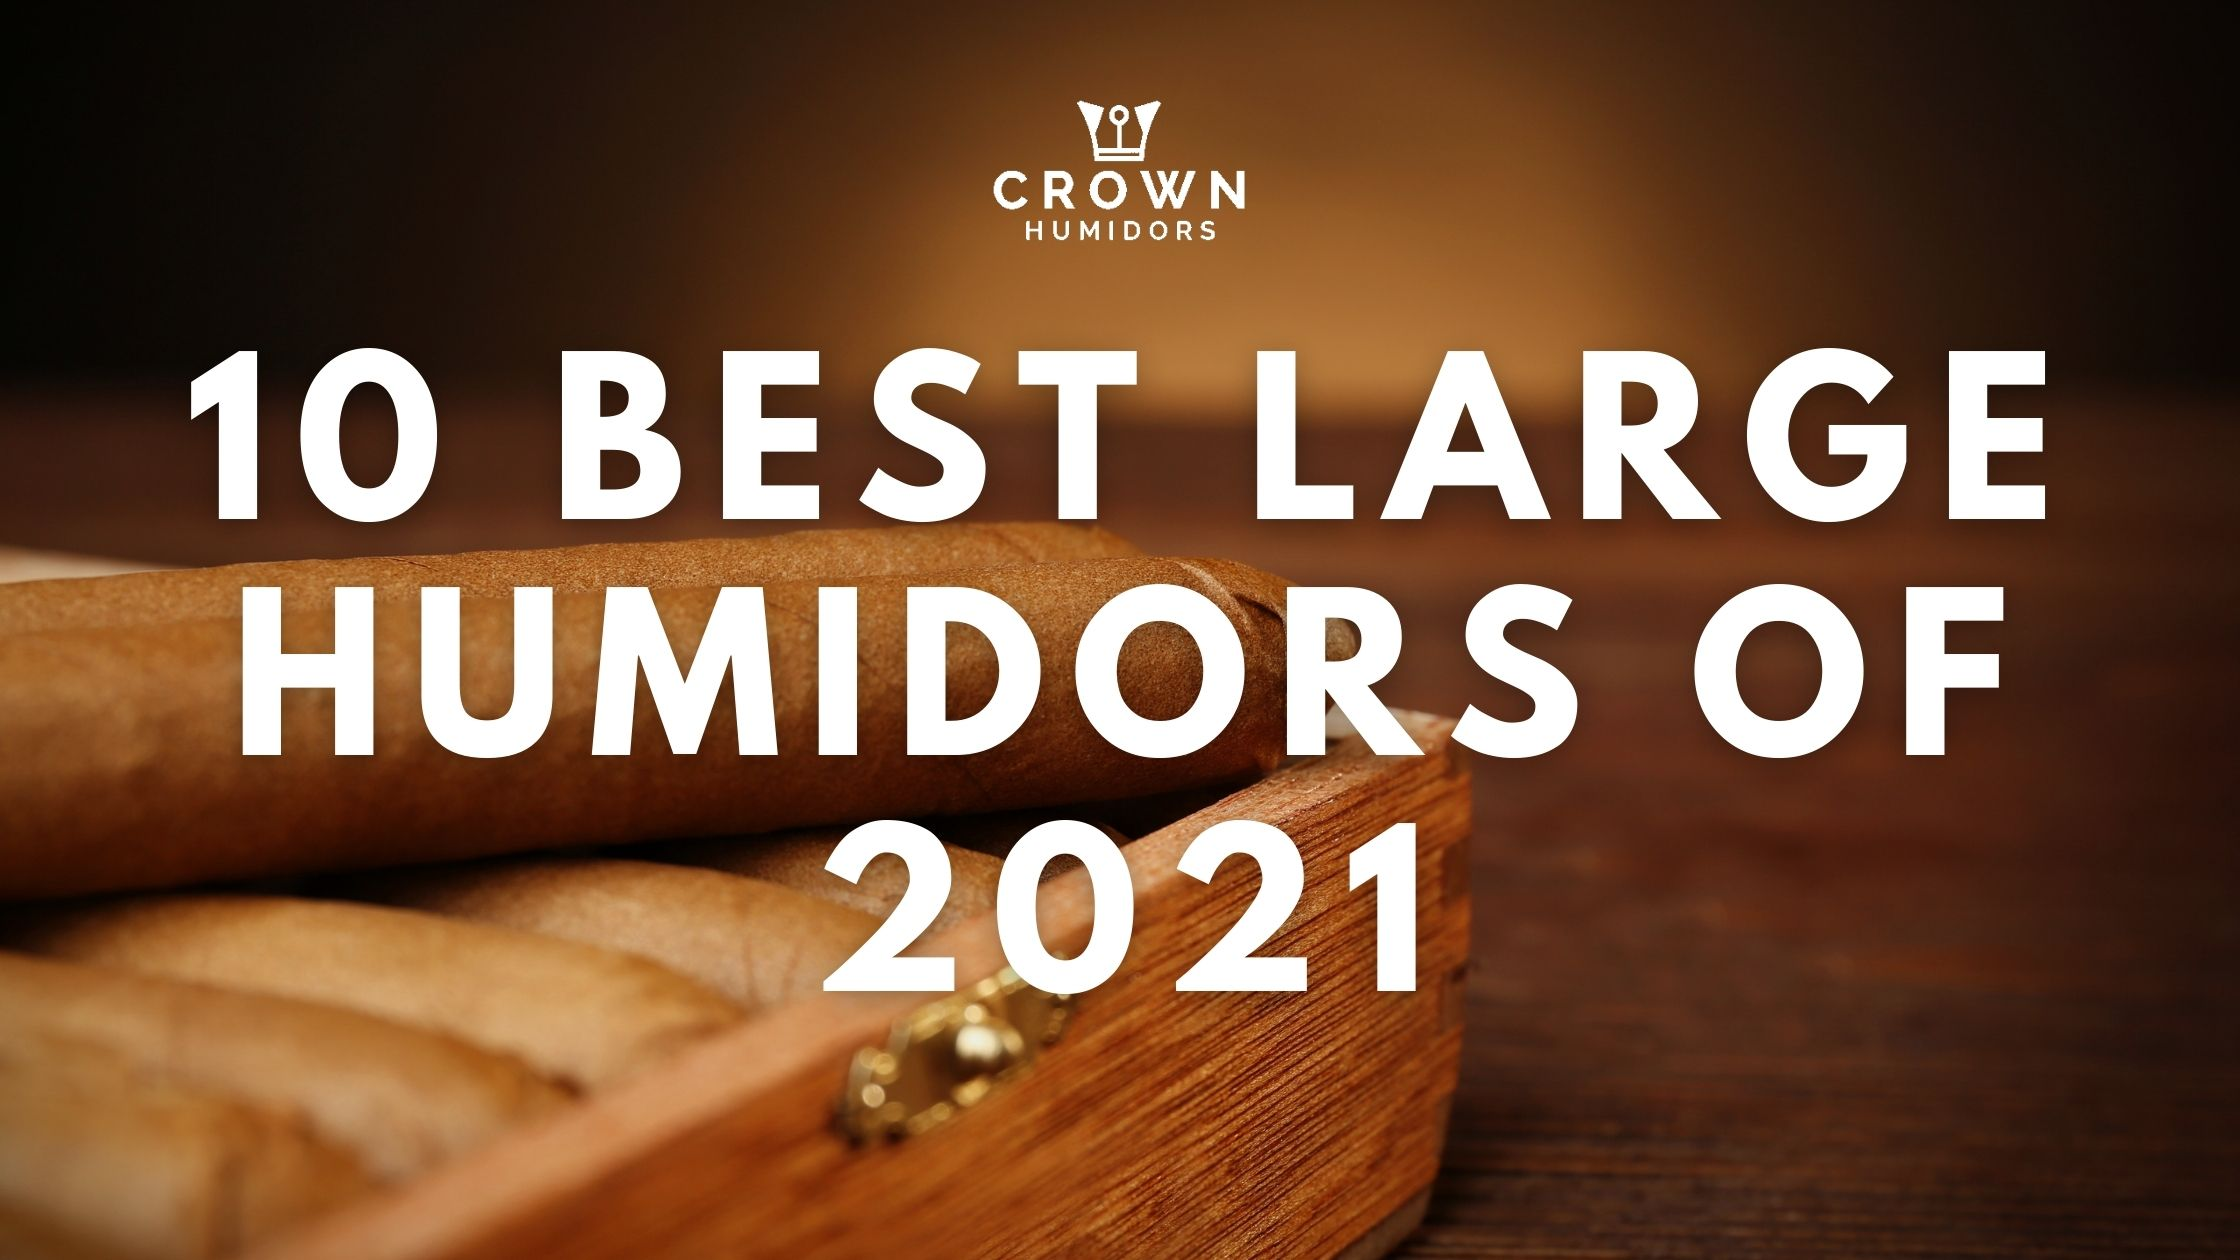 10 BEST LARGE HUMIDORS of 2021